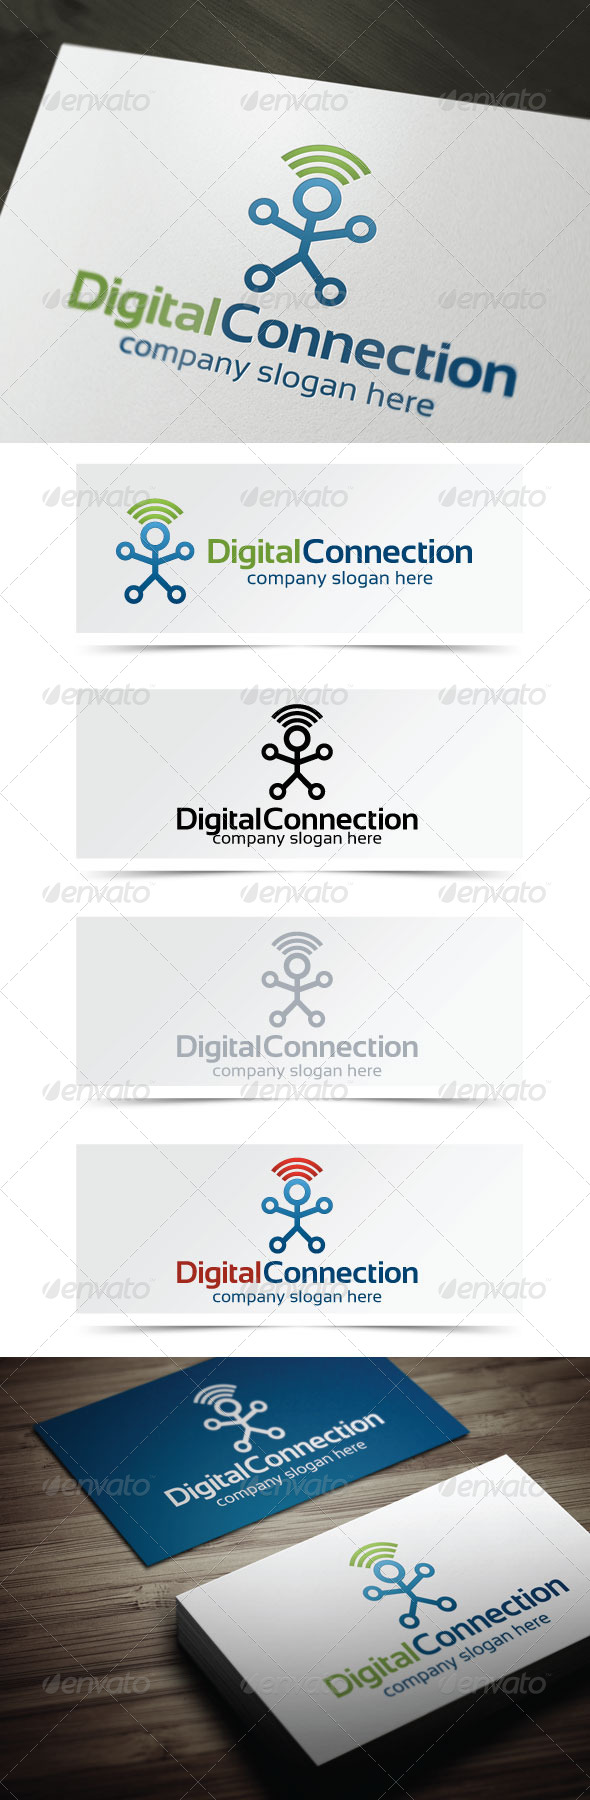 GraphicRiver Digital Connection 4623379